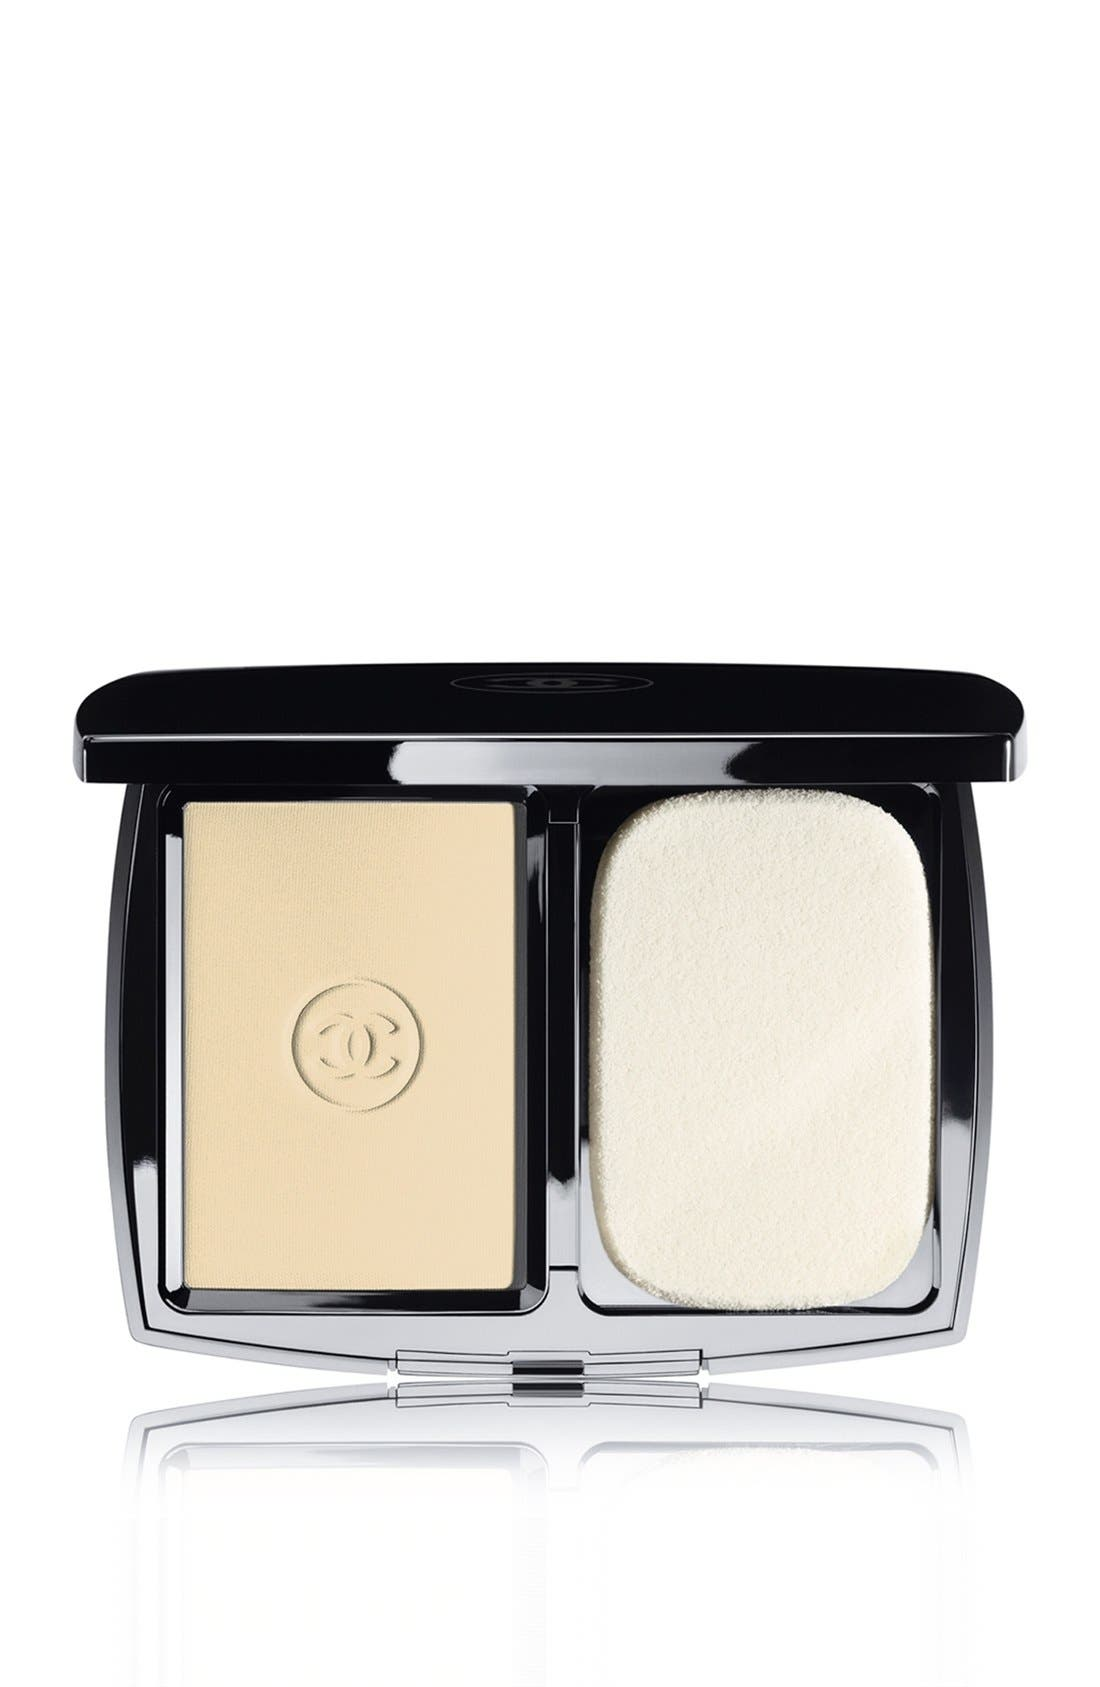 DOUBLE PERFECTION LUMIÈRE<br />Long-Wear Flawless Sunscreen Powder Makeup Broad Spectrum SPF 15,                             Main thumbnail 9, color,